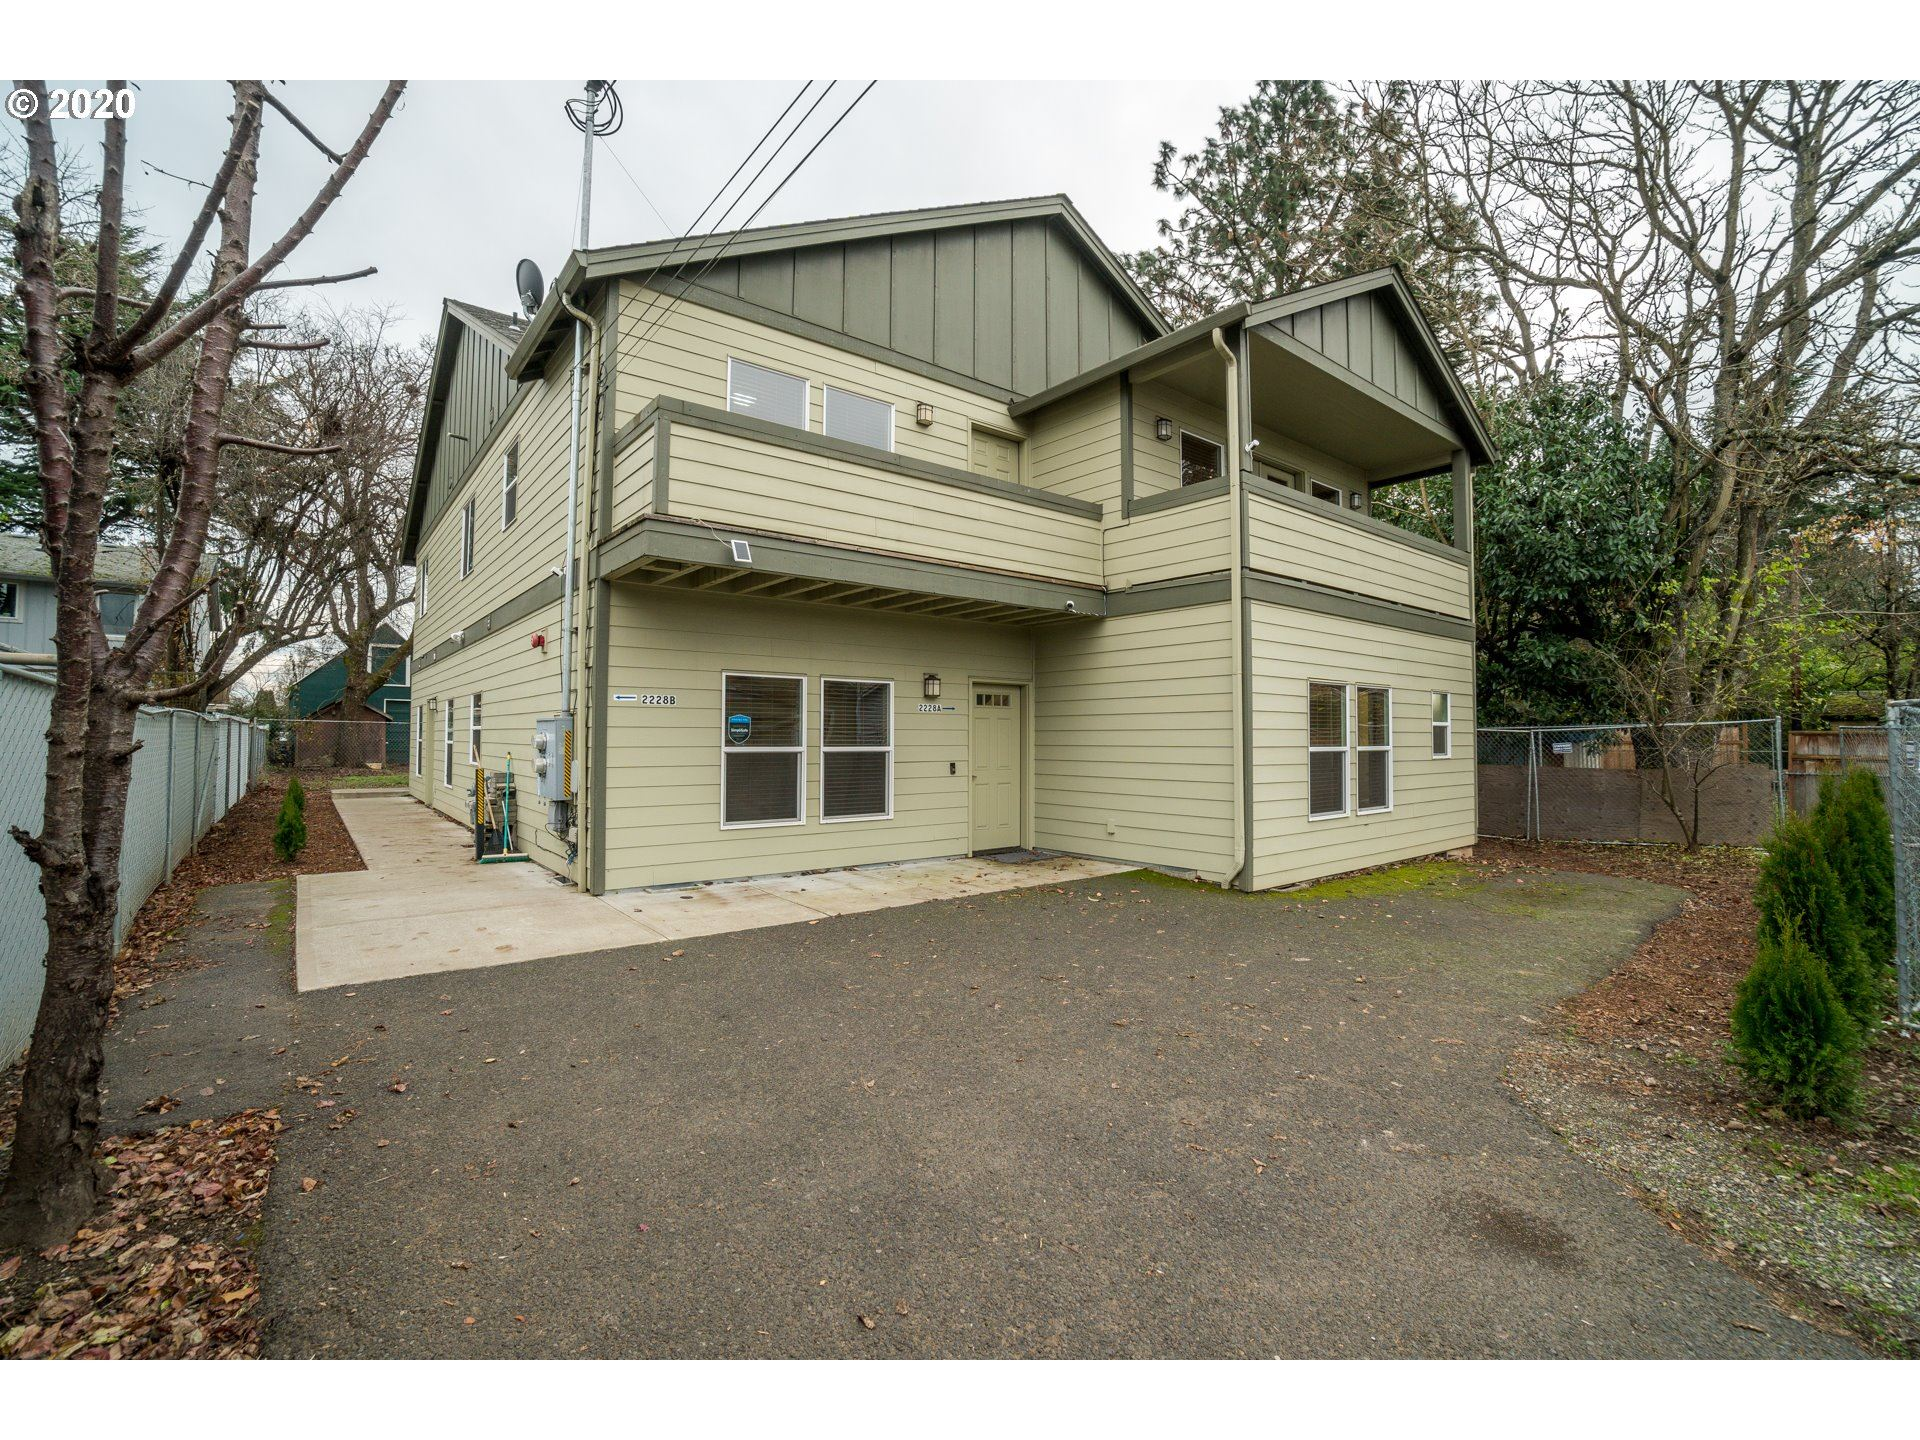 2228 SE 90TH AVE, Portland, OR 97216 - MLS#: 20344593